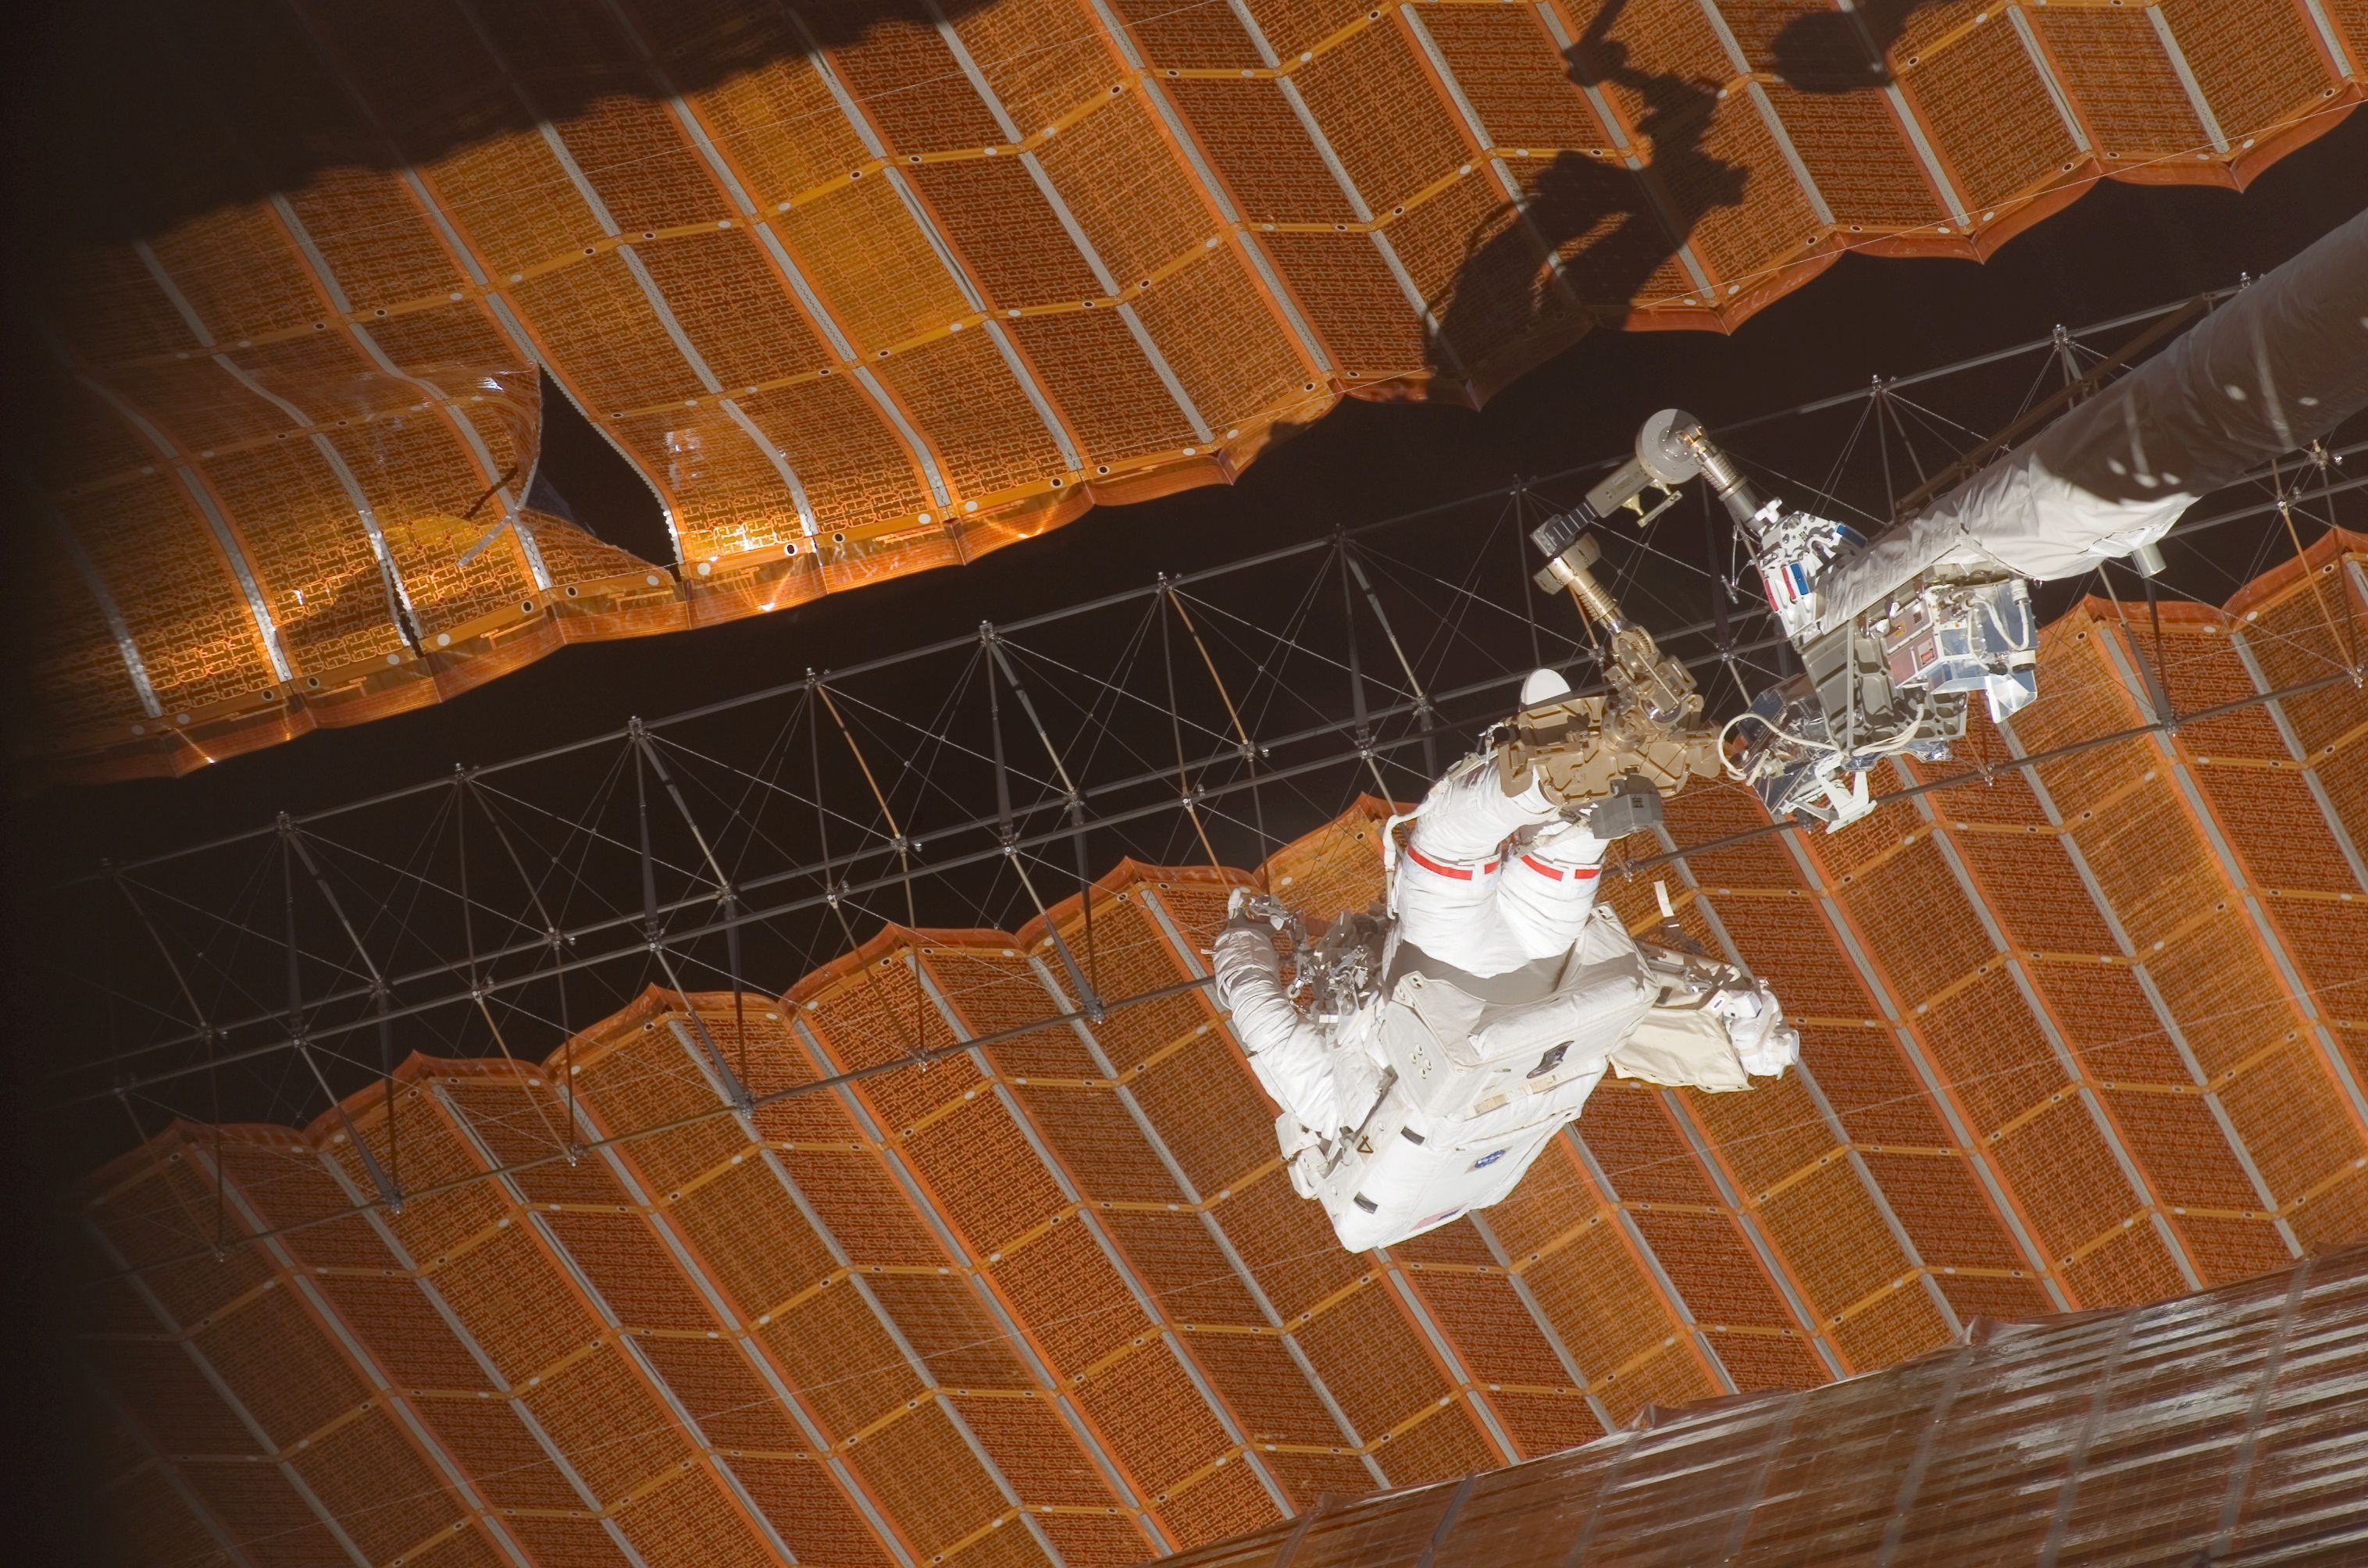 Two black and orange solar arrays, shown uneven and with a large tear visible. A crew member in a spacesuit, attached to the end of a robotic arm, holds a latticework between two solar sails.